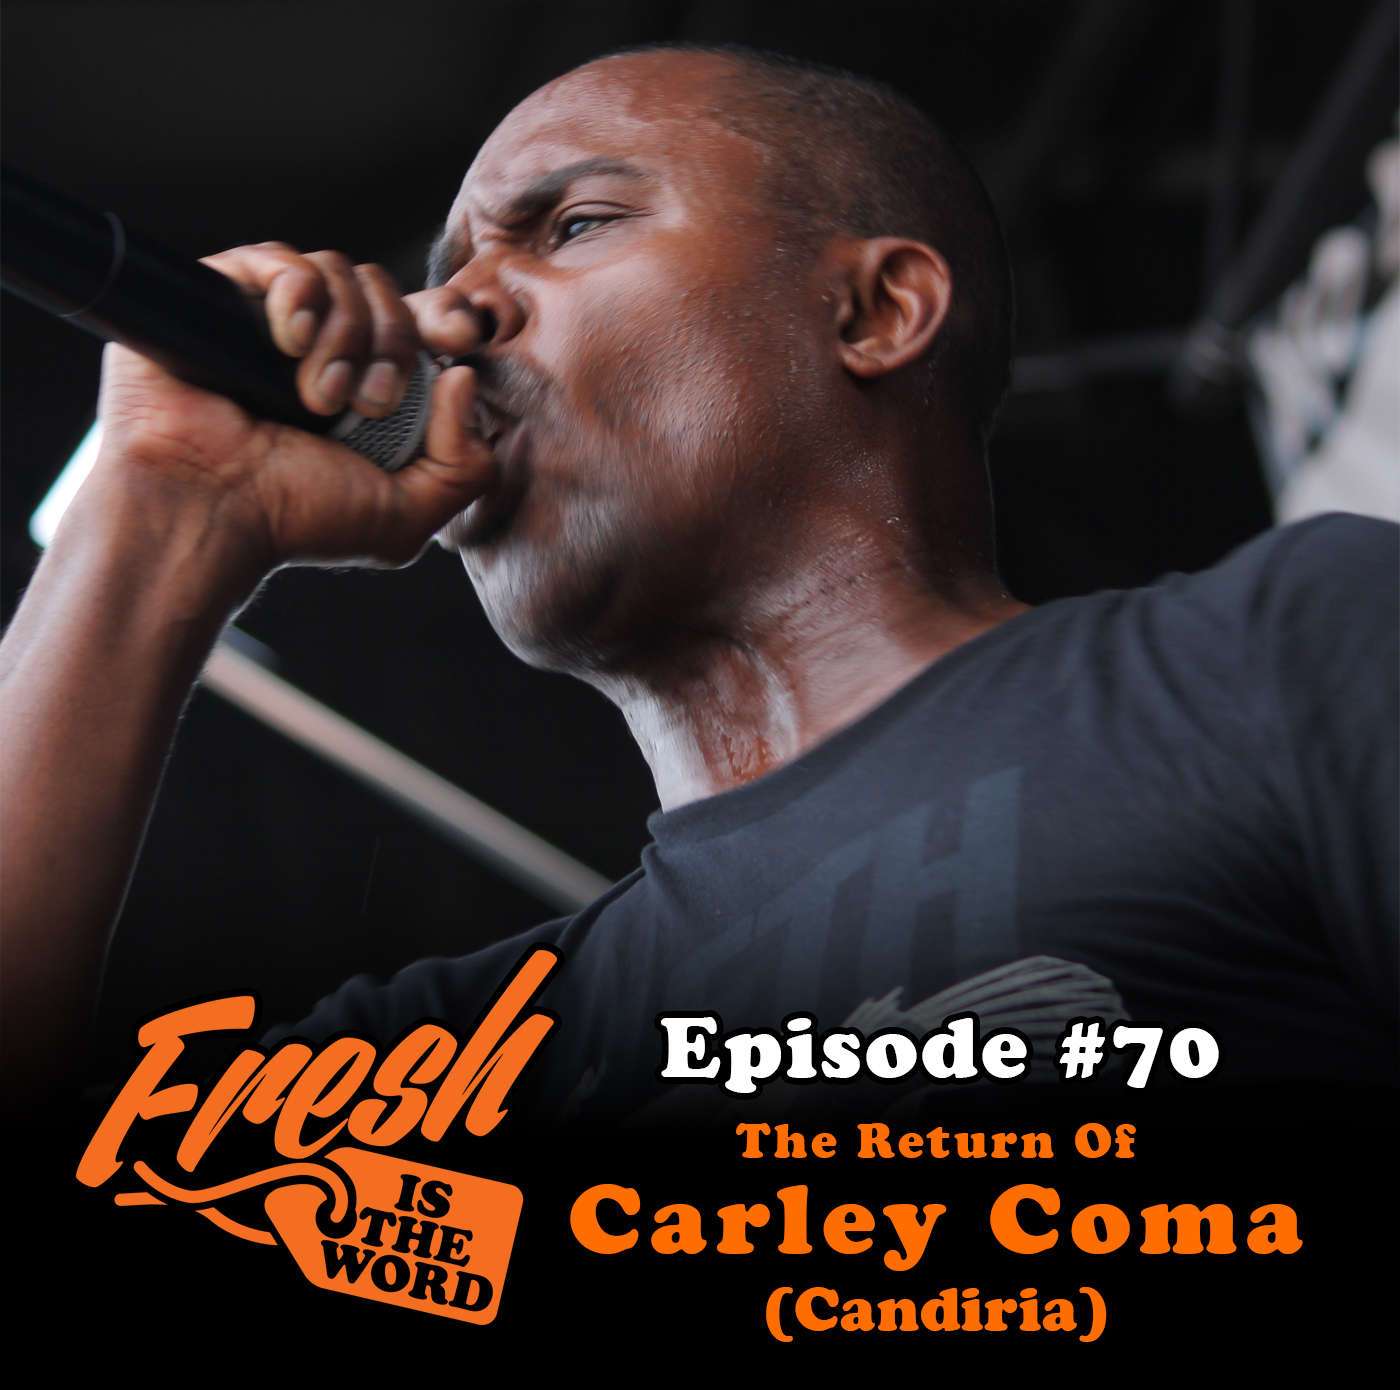 Episode #70: The Return of Carley Coma (Candiria) by Fresh Is The